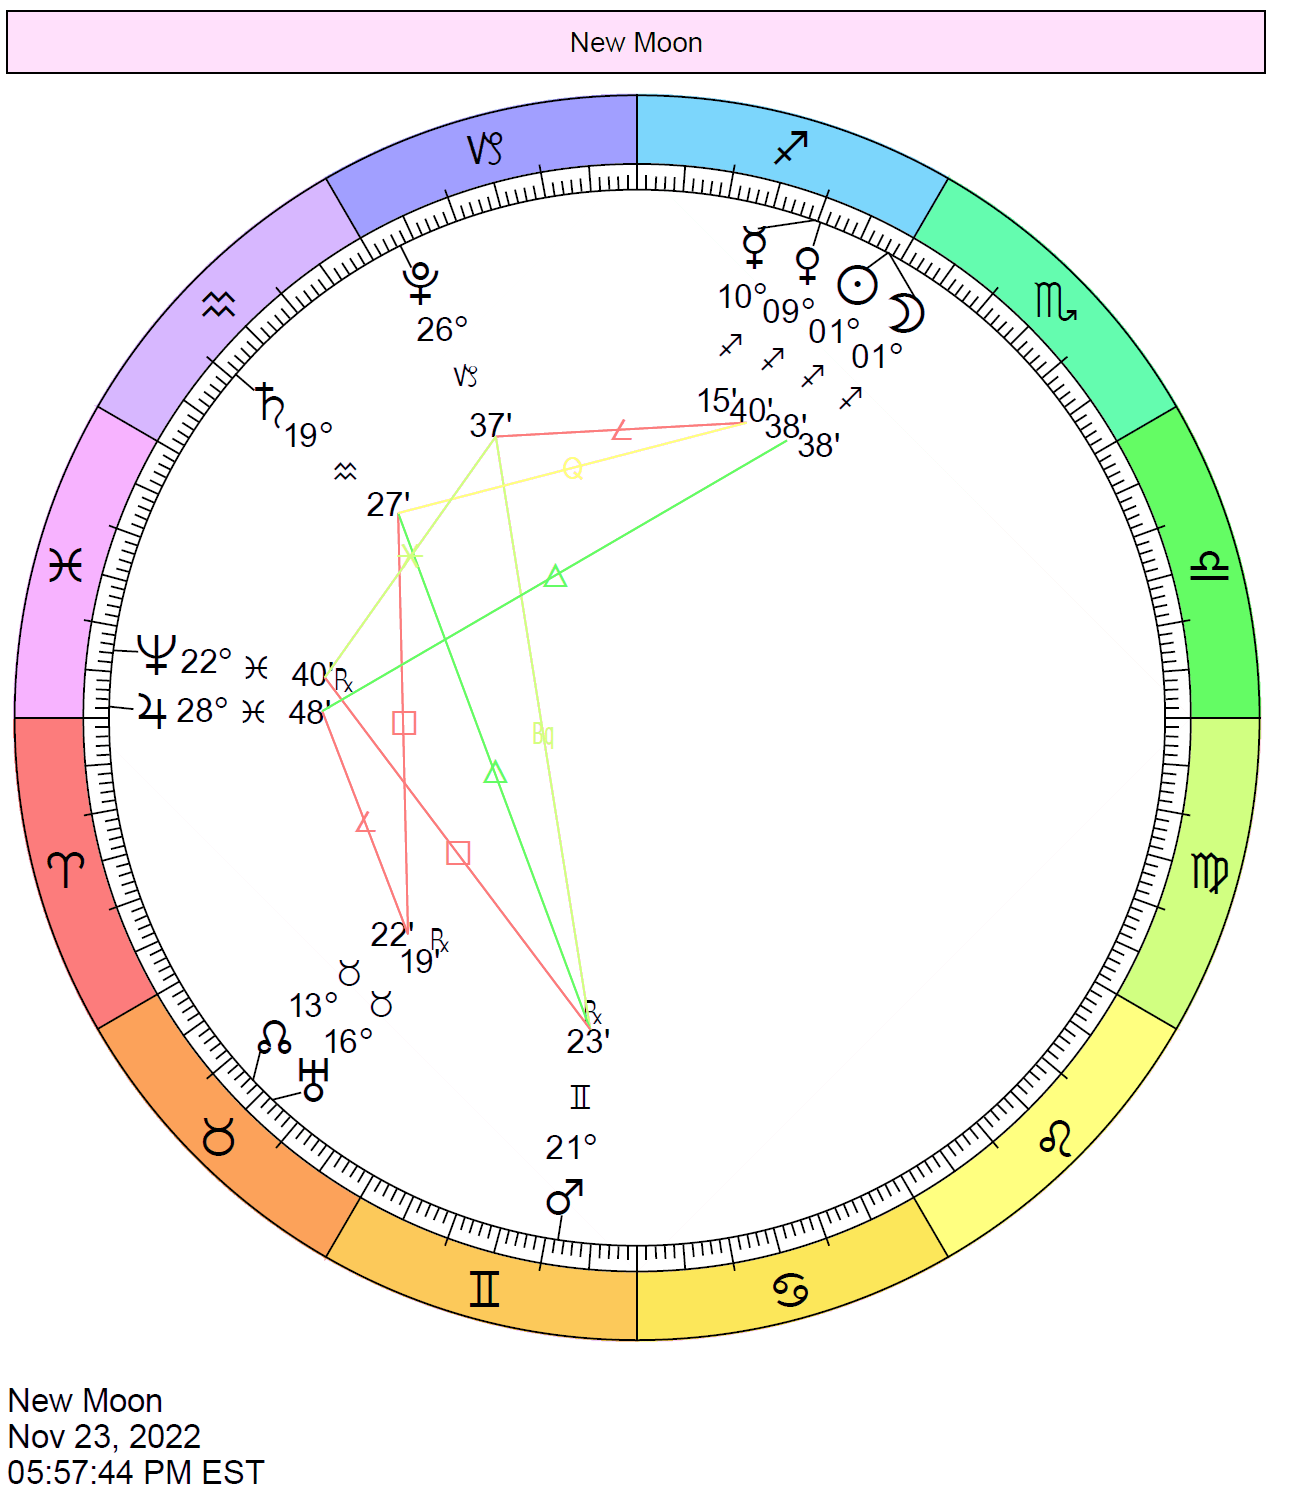 Chart Wheel depicts the positions of the planets when the Moon is New in November 2022